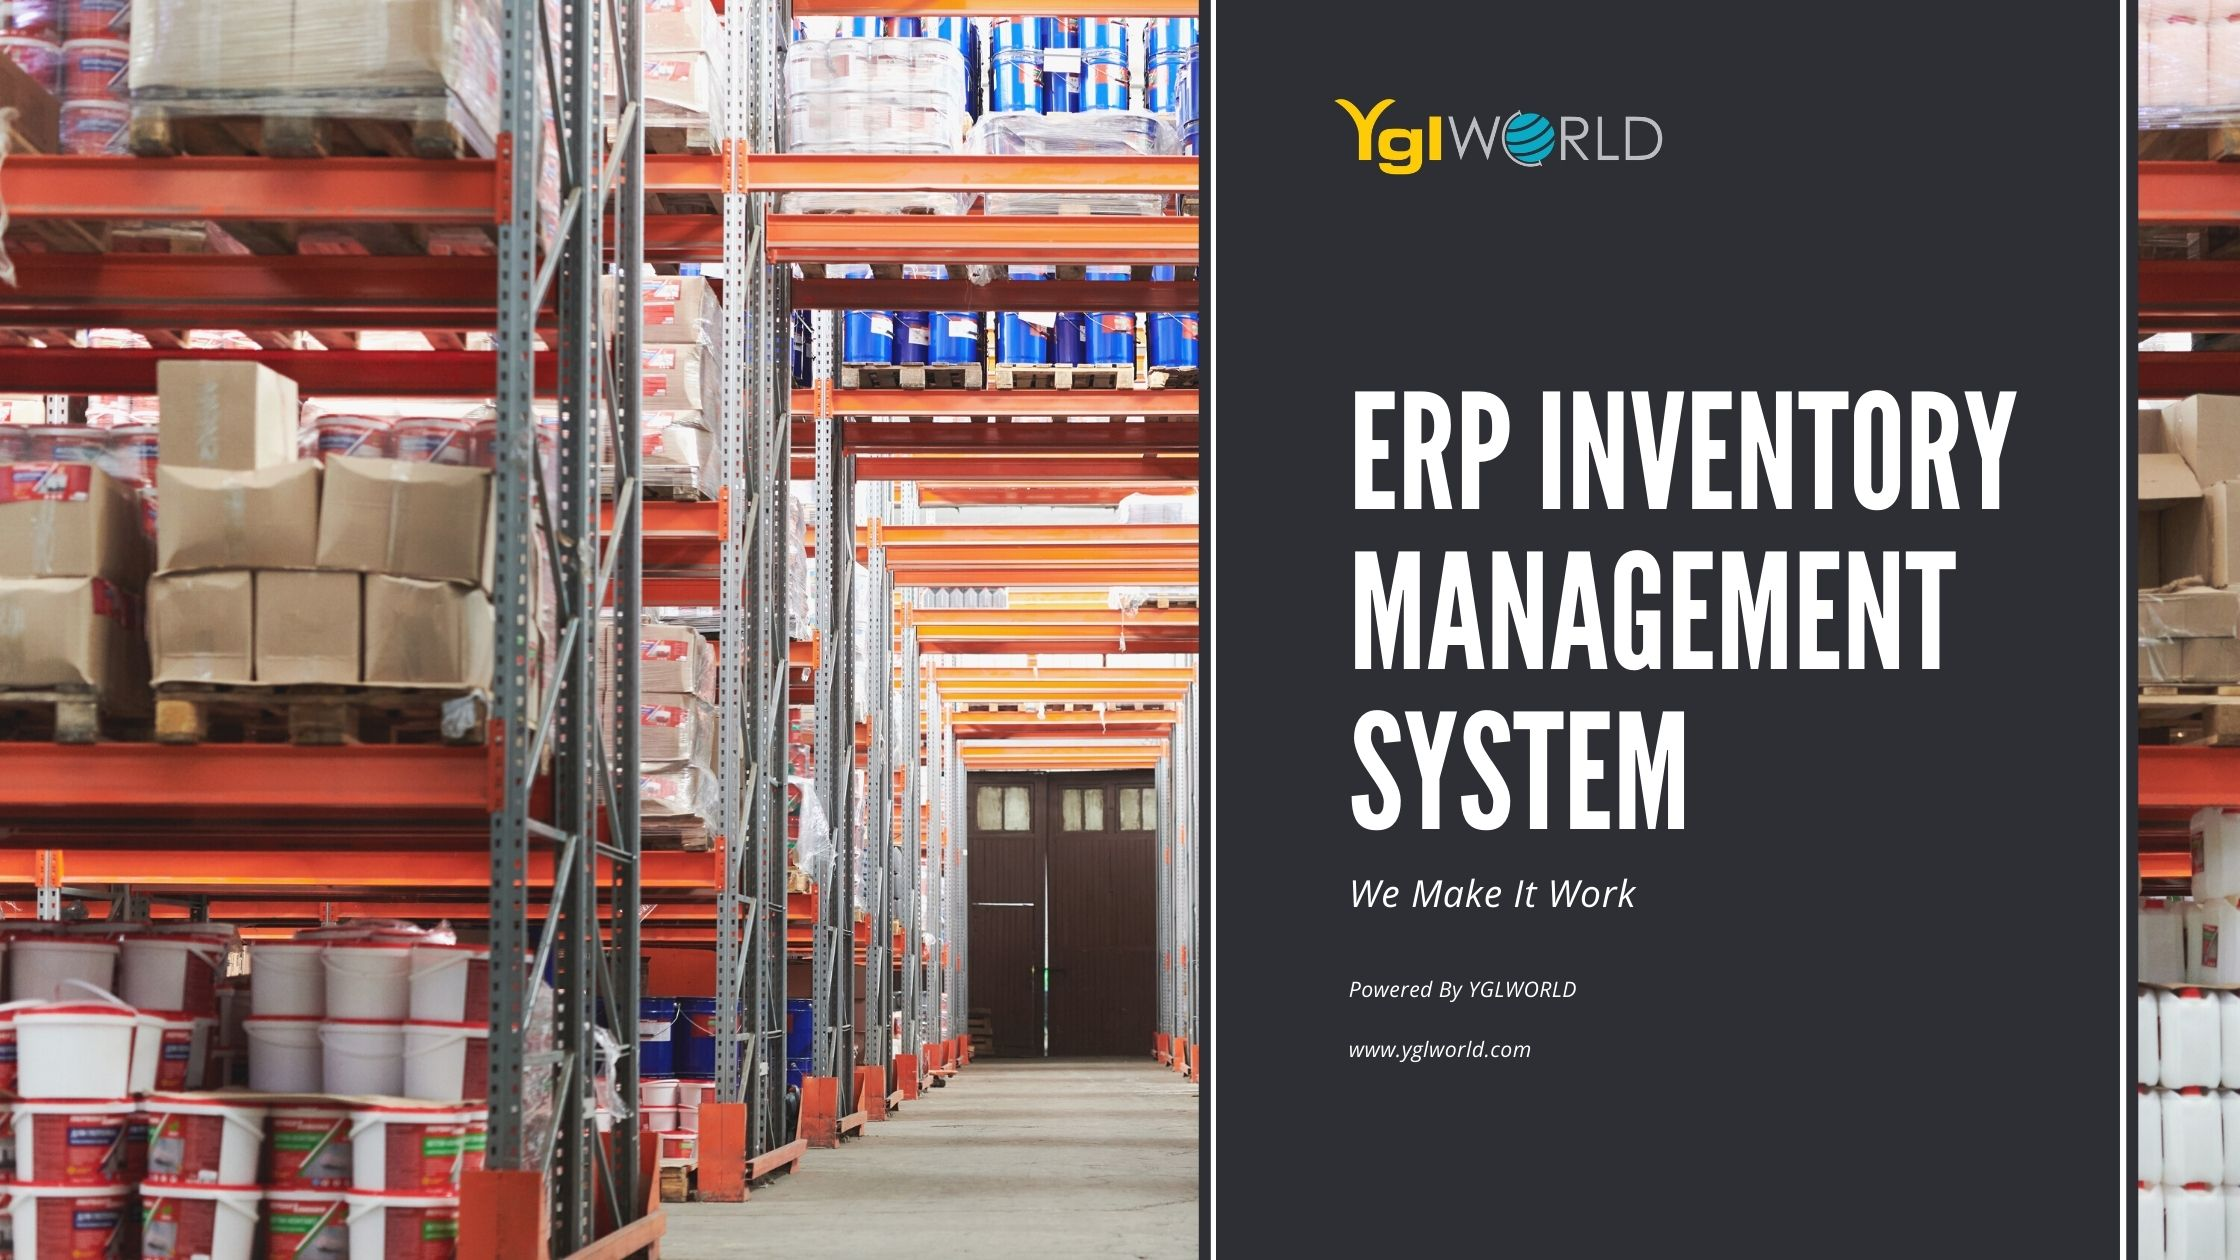 What is an ERP inventory management system?